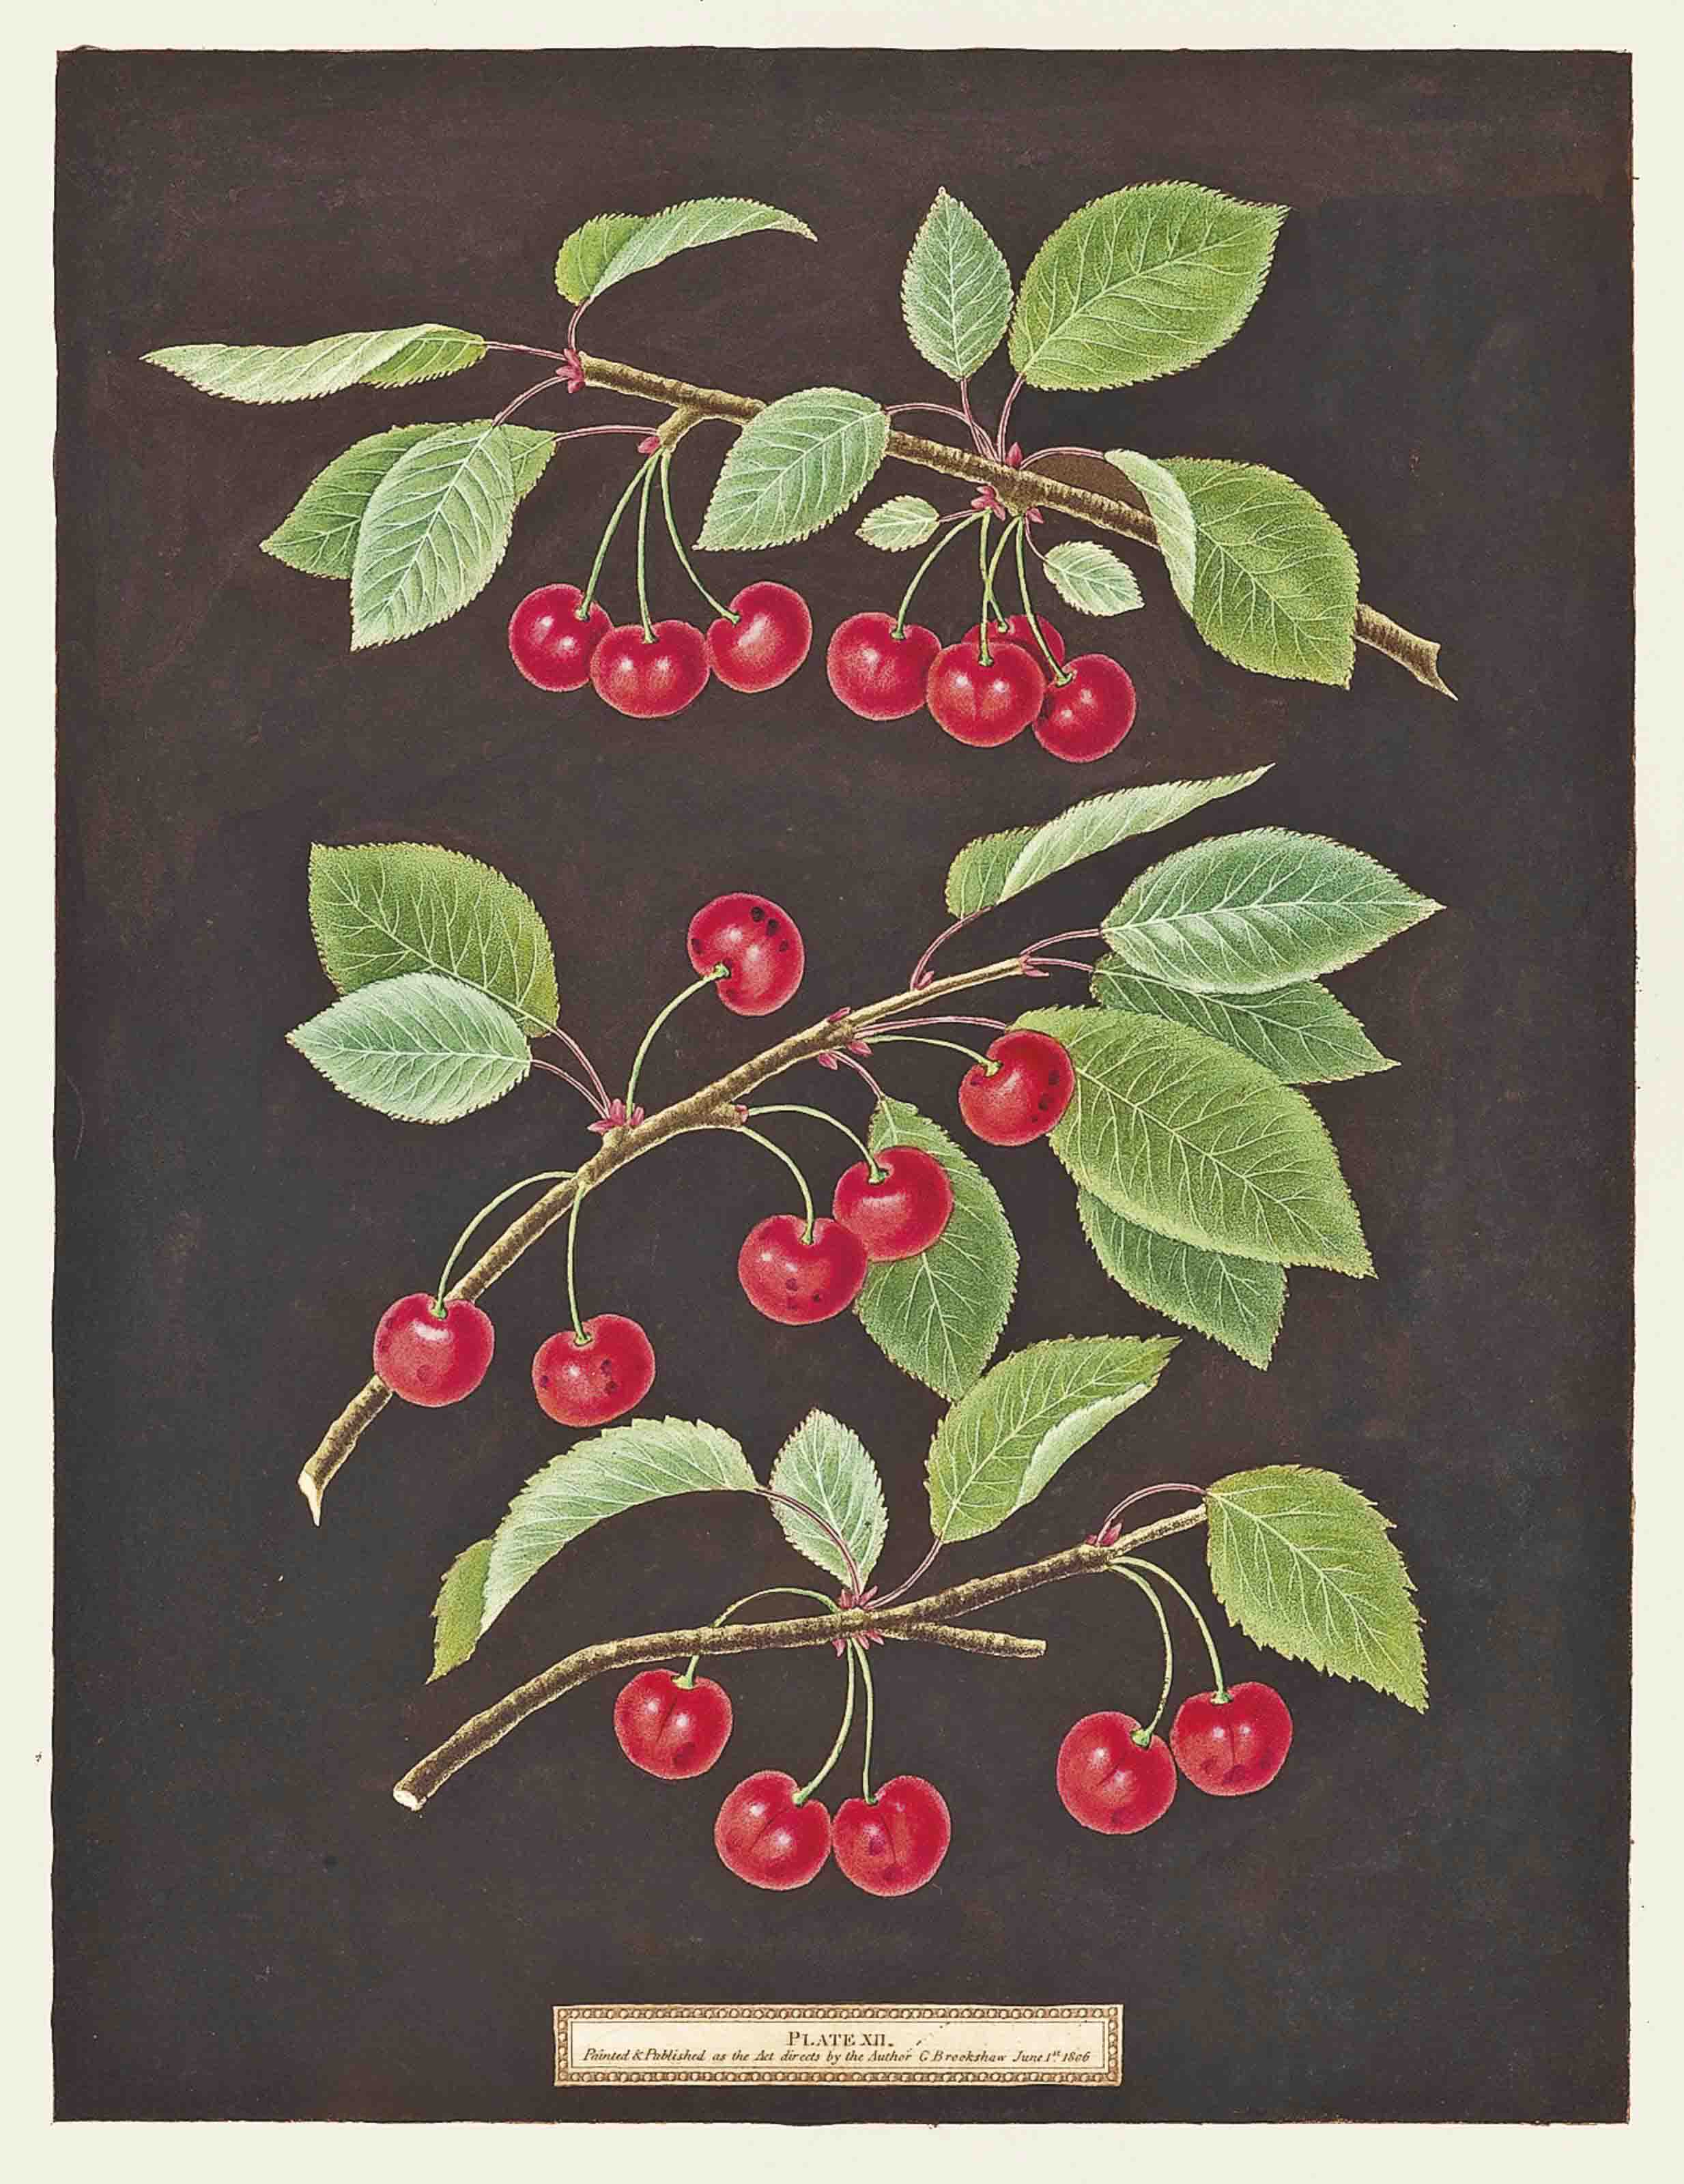 Kentish or Flemish Cherry, English Bearer, Carnation Cherry; Hautboy Strawberry, Chili-Strawberry, Alpine Red Strawberry, Scarlet Flesh Strawberry; Montauban Peach, Gross Minion, Royal George Old Peach; Black Apricot, Breda Apricot, Brussels Moor Park Apricot; Striped Holland Pippin, Marygold Apple, Sullenworth's Rennet Apple, Beauty of Kent; Gallande, La Teton de Venus, Noblesse Peach; Chaumontelle Pear, Windsor Pear, Summer Bon Chretien, French Summer Bon Chretien; and Common Damson, White Damson